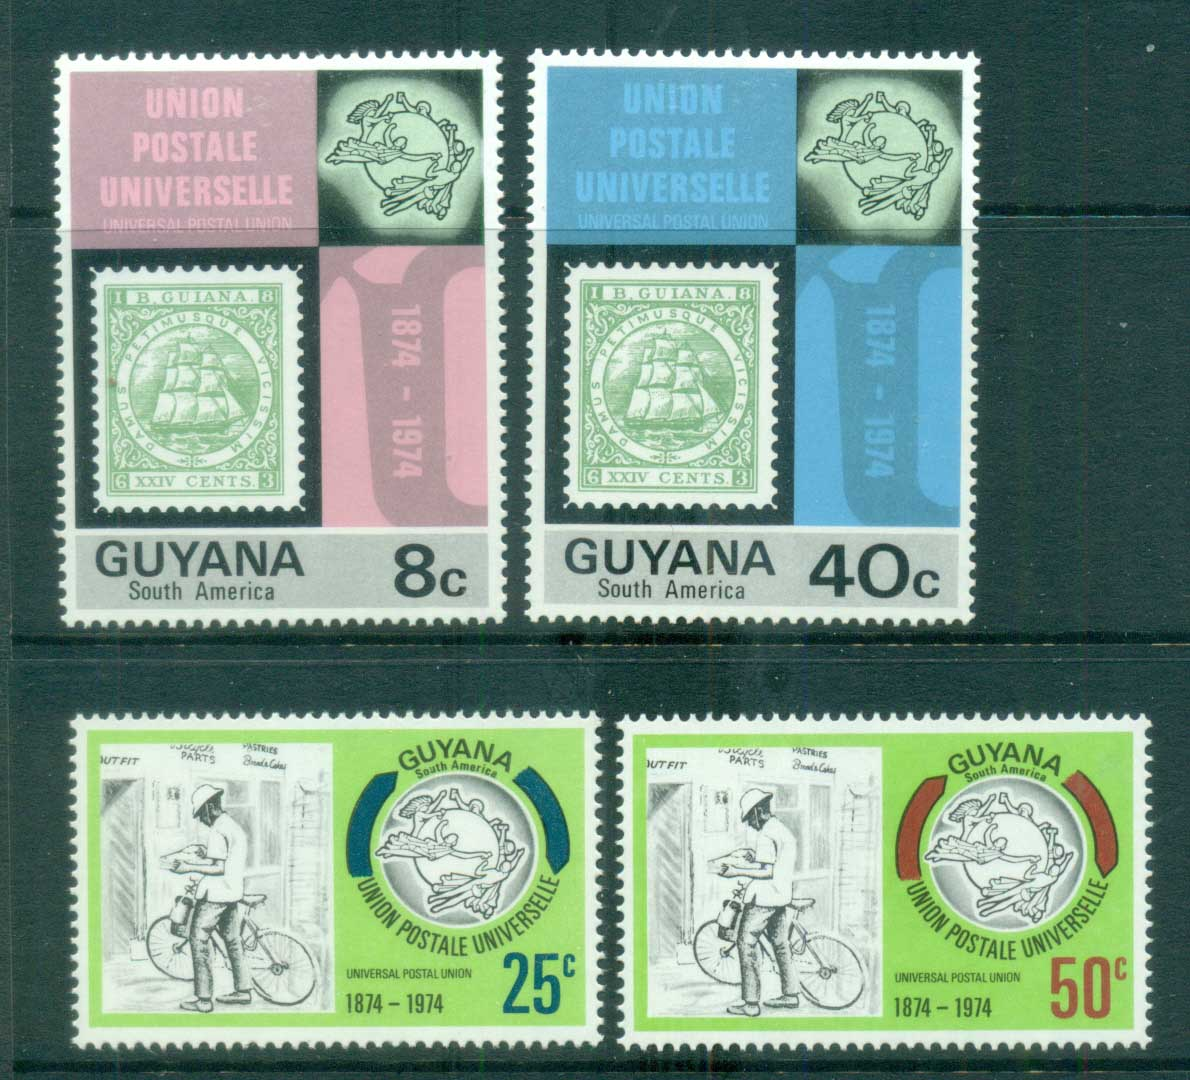 Guyana 1974 UPU Centenary MLH lot80910